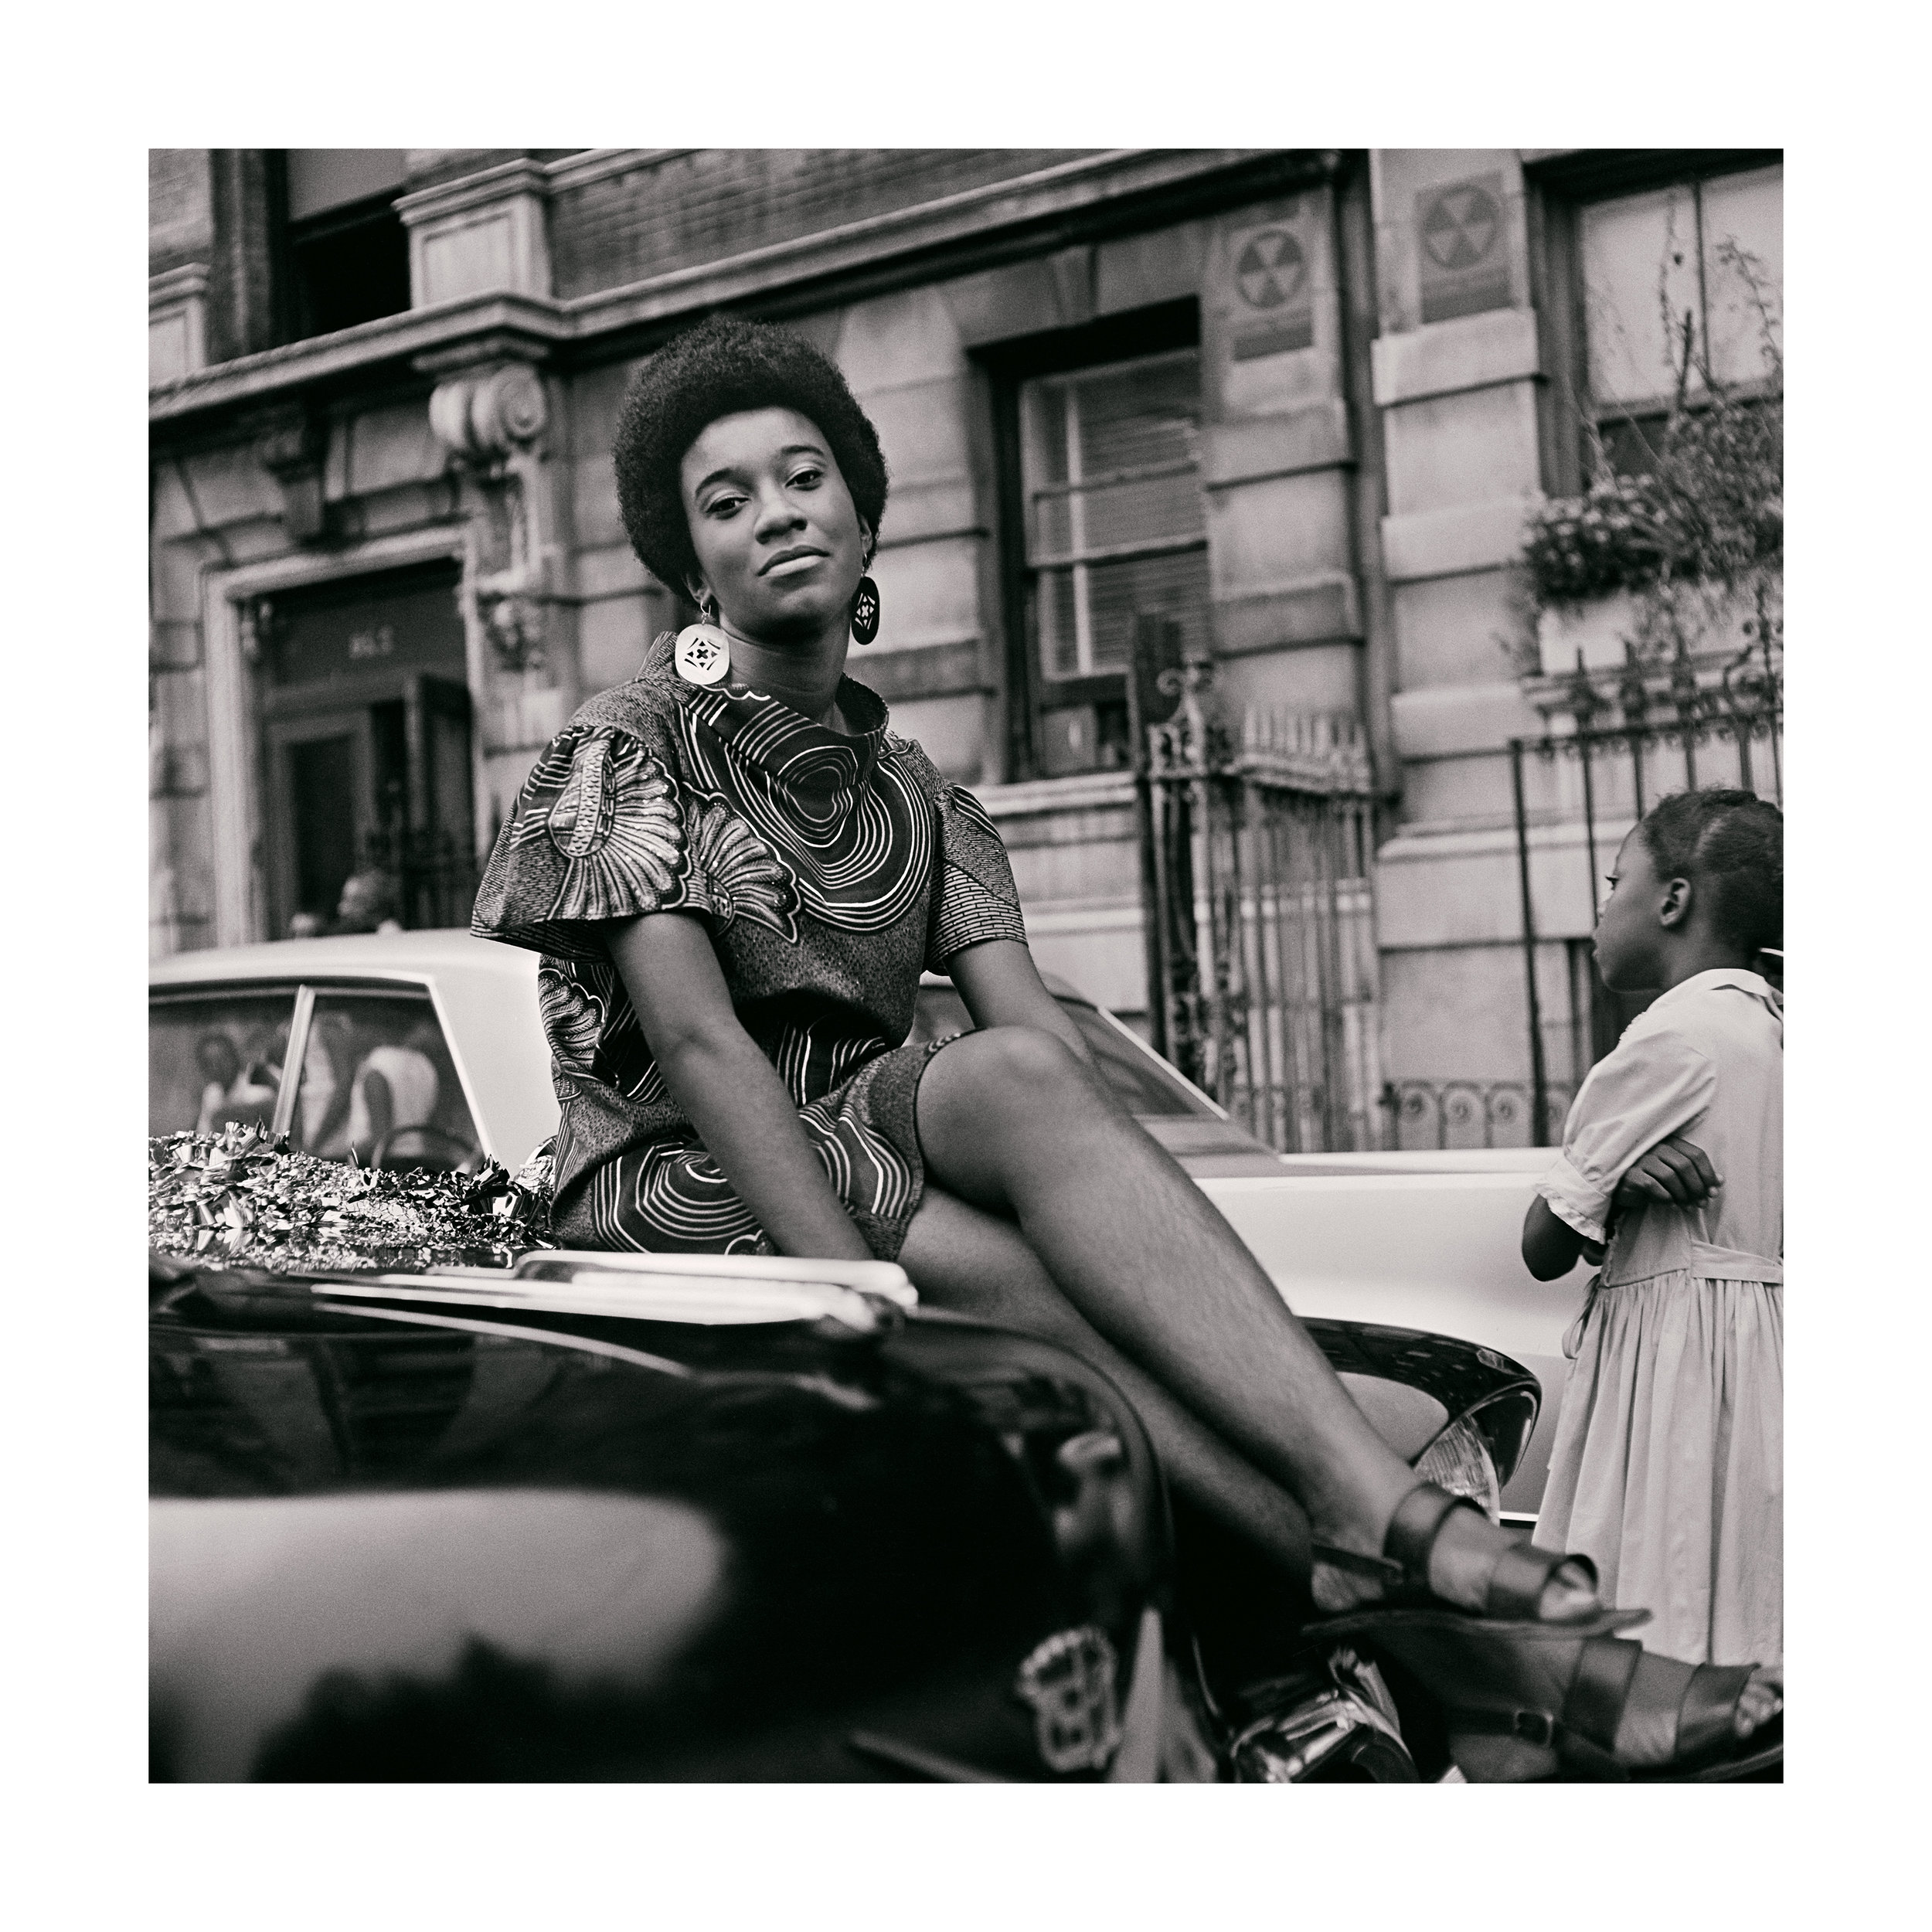 Kwame Brathwaite. Grandassa Model on car during Marcus Garvey Day celebration, Harlem, ca. 1968.Courtesy of the artist and Philip Martin Gallery, Los Angeles.